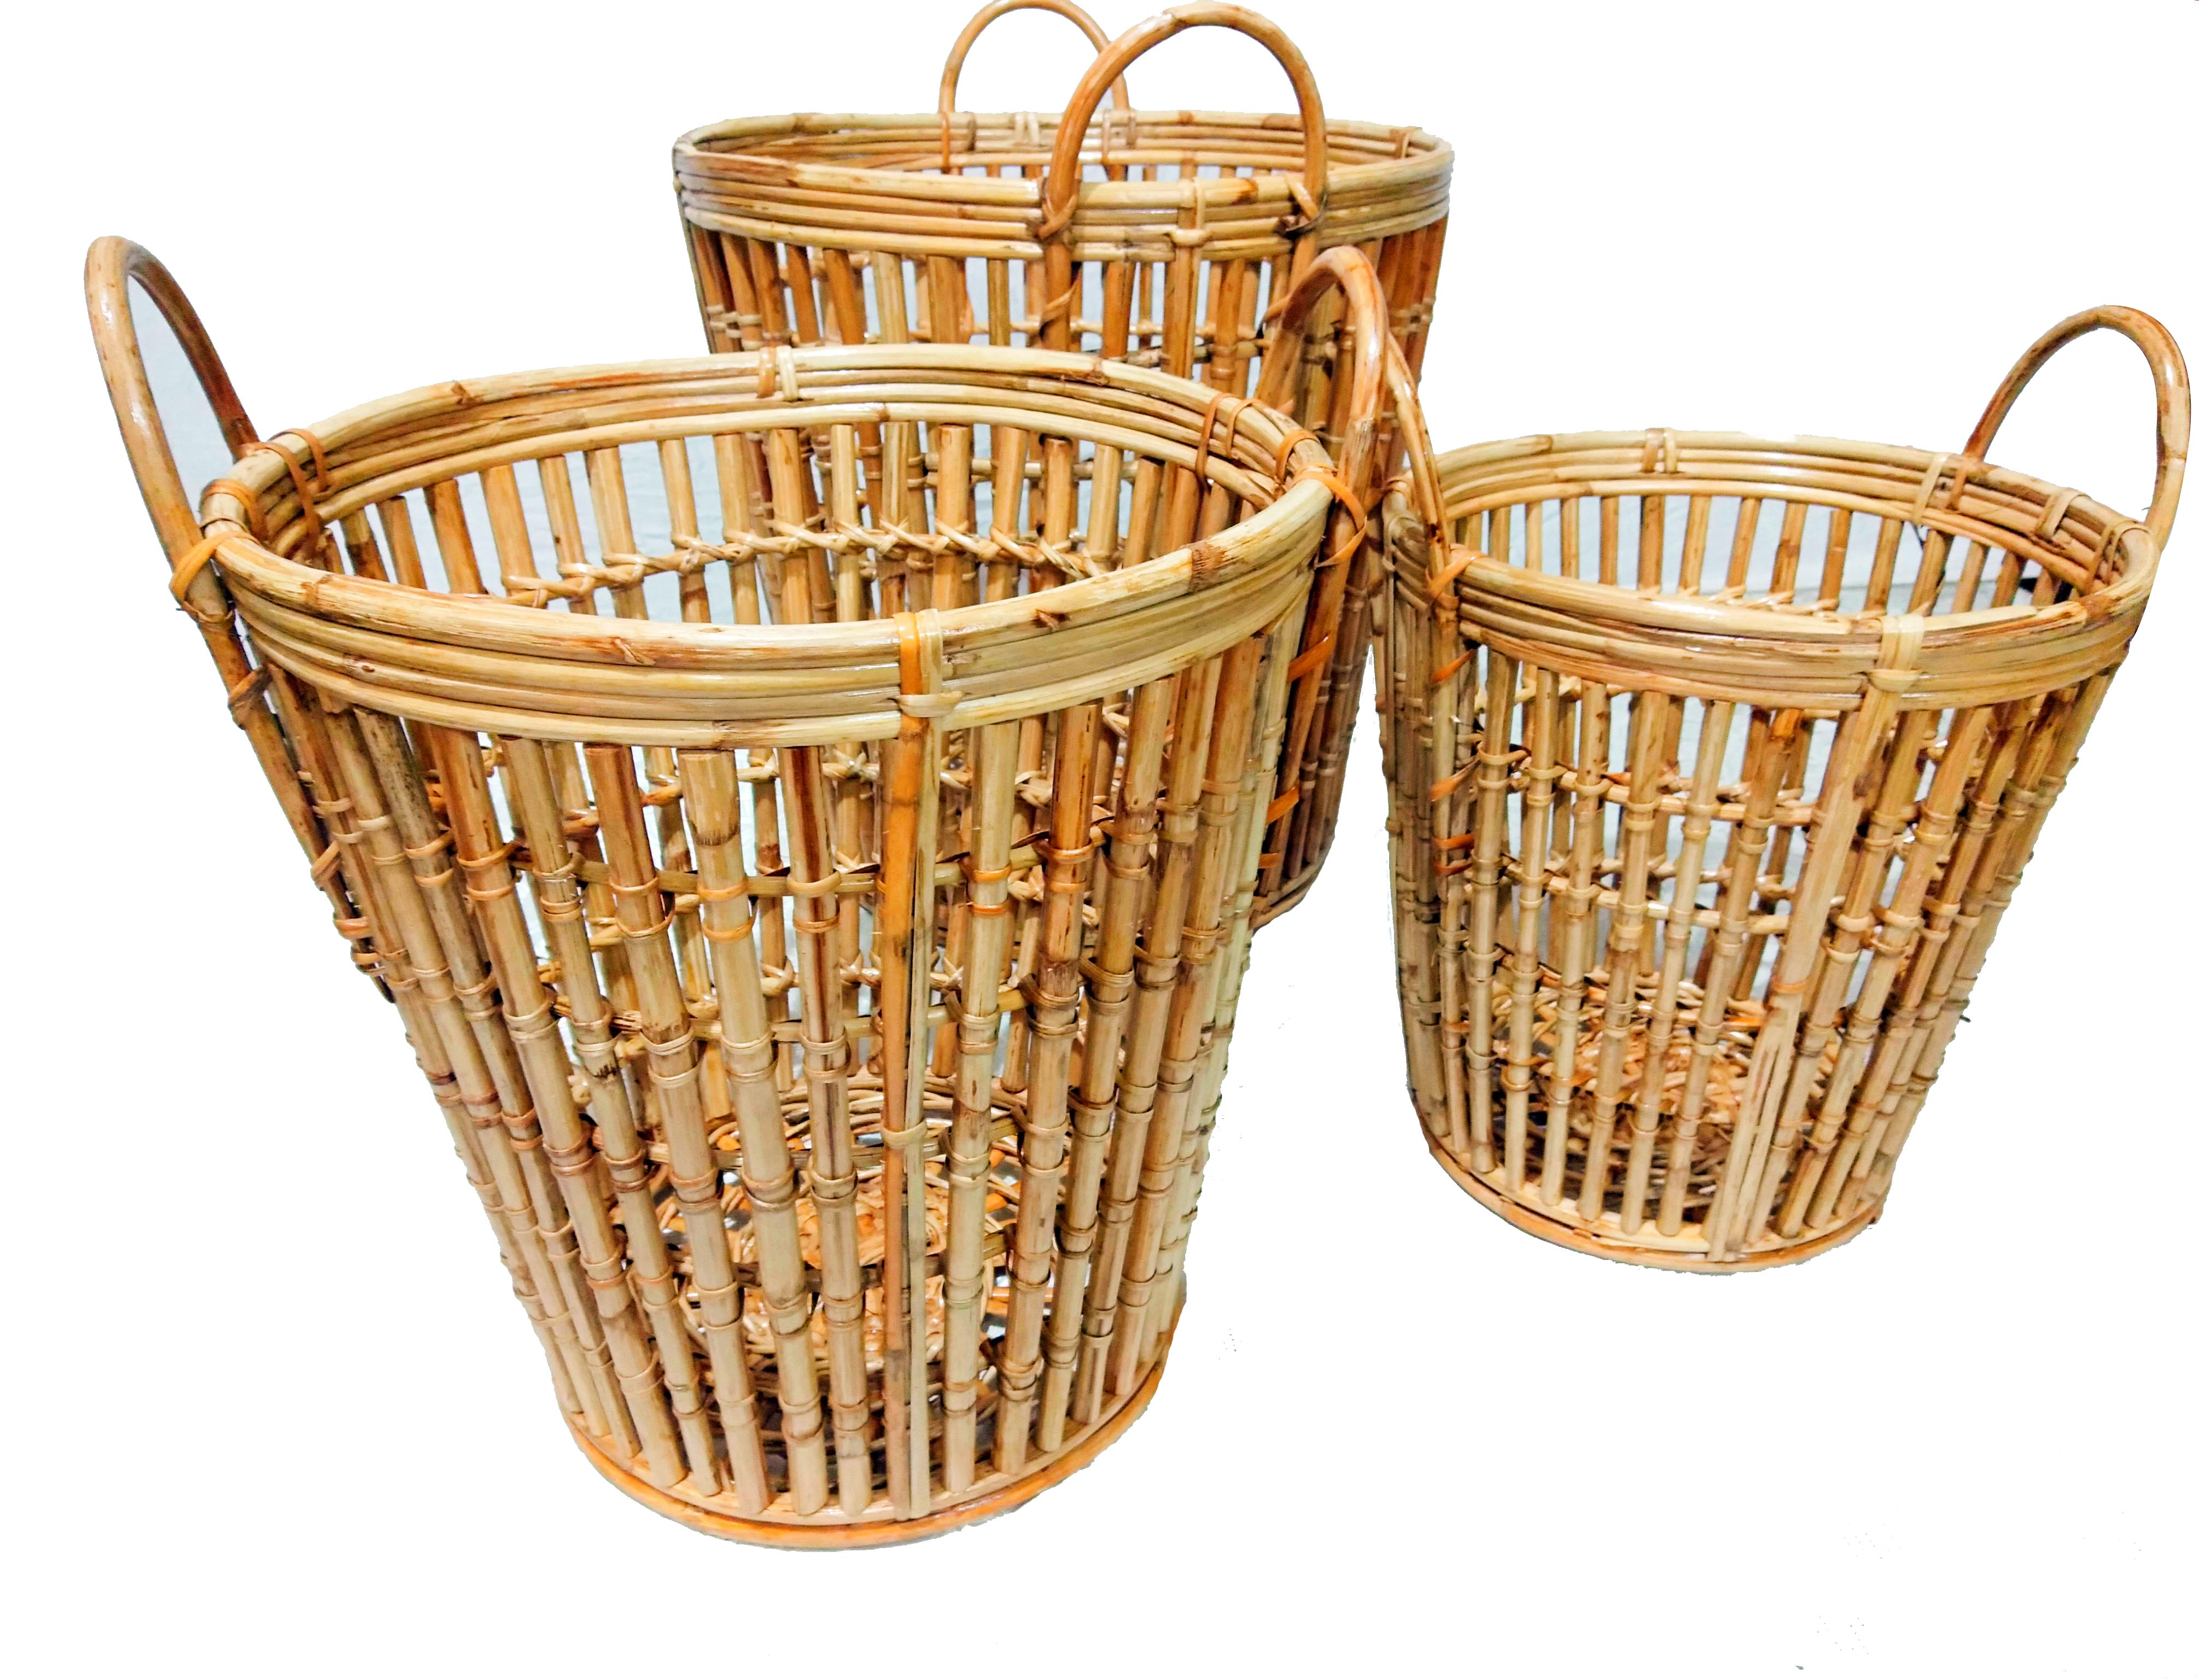 ROUND STICK LAUNDRY BASKET